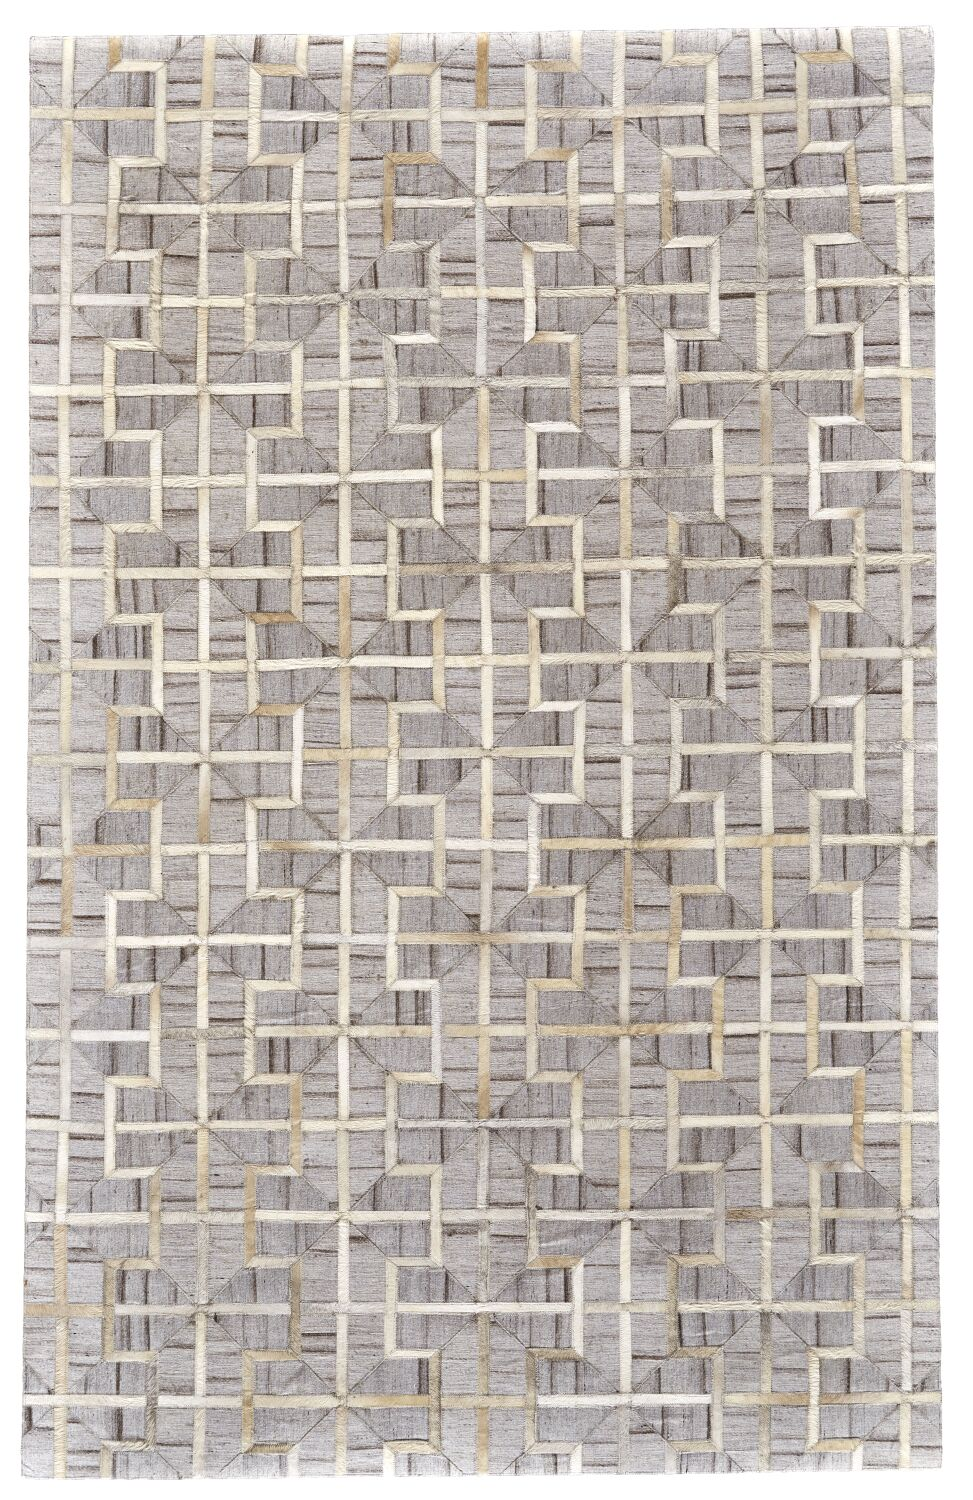 Grossi Hand-Woven Ivory/Sand Area Rug Rug Size: Rectangle 5' x 8'